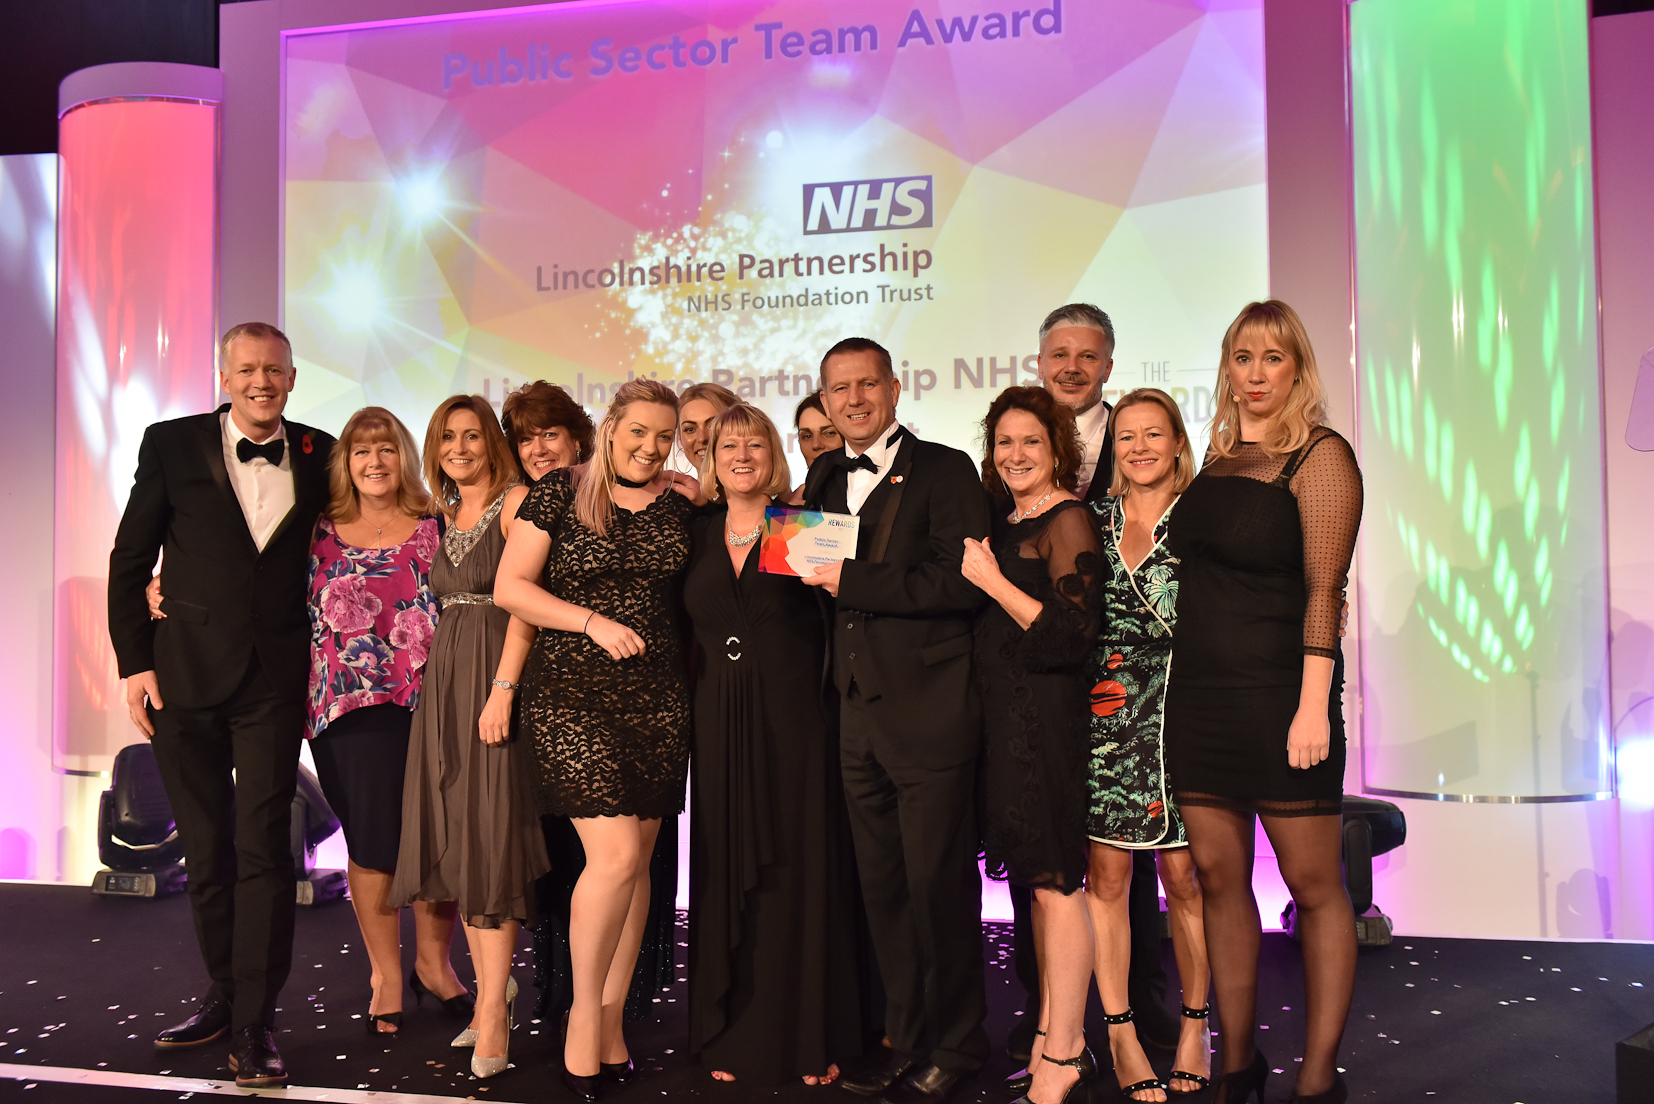 Winners 2017 - 13  Public Sector Team Award